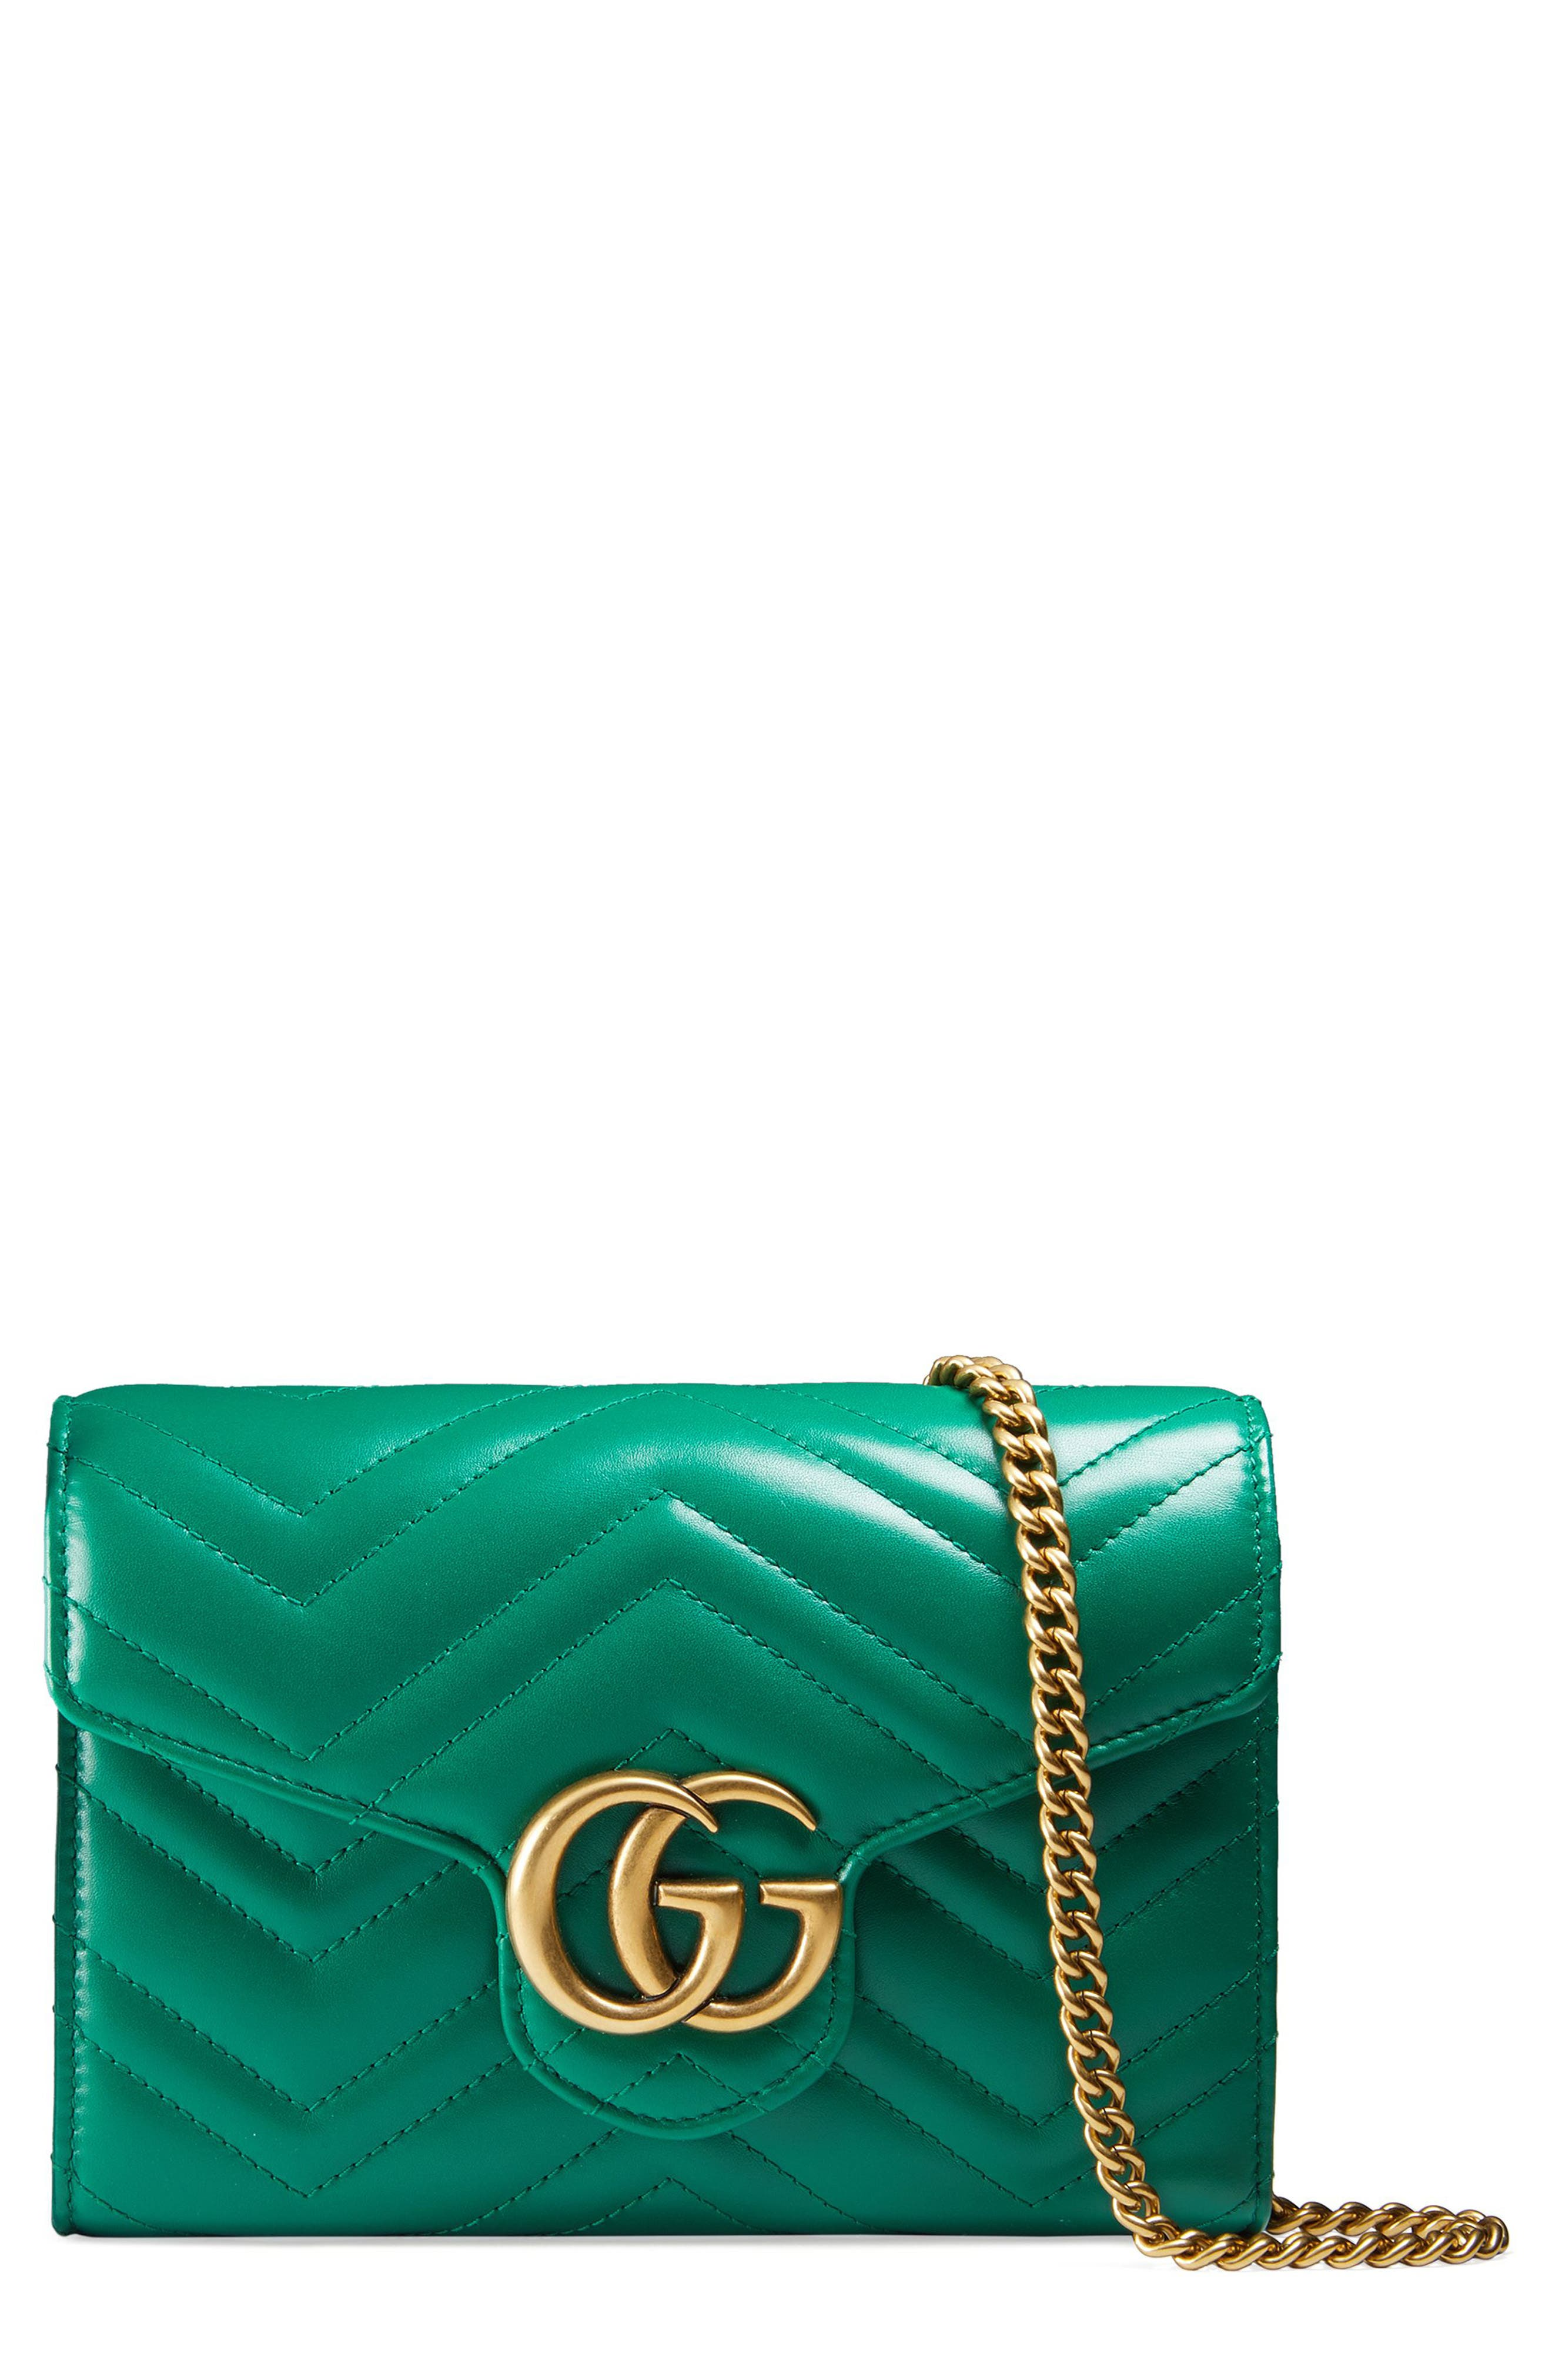 Alternate Image 1 Selected - Gucci GG Marmont Matelassé Leather Wallet on a Chain